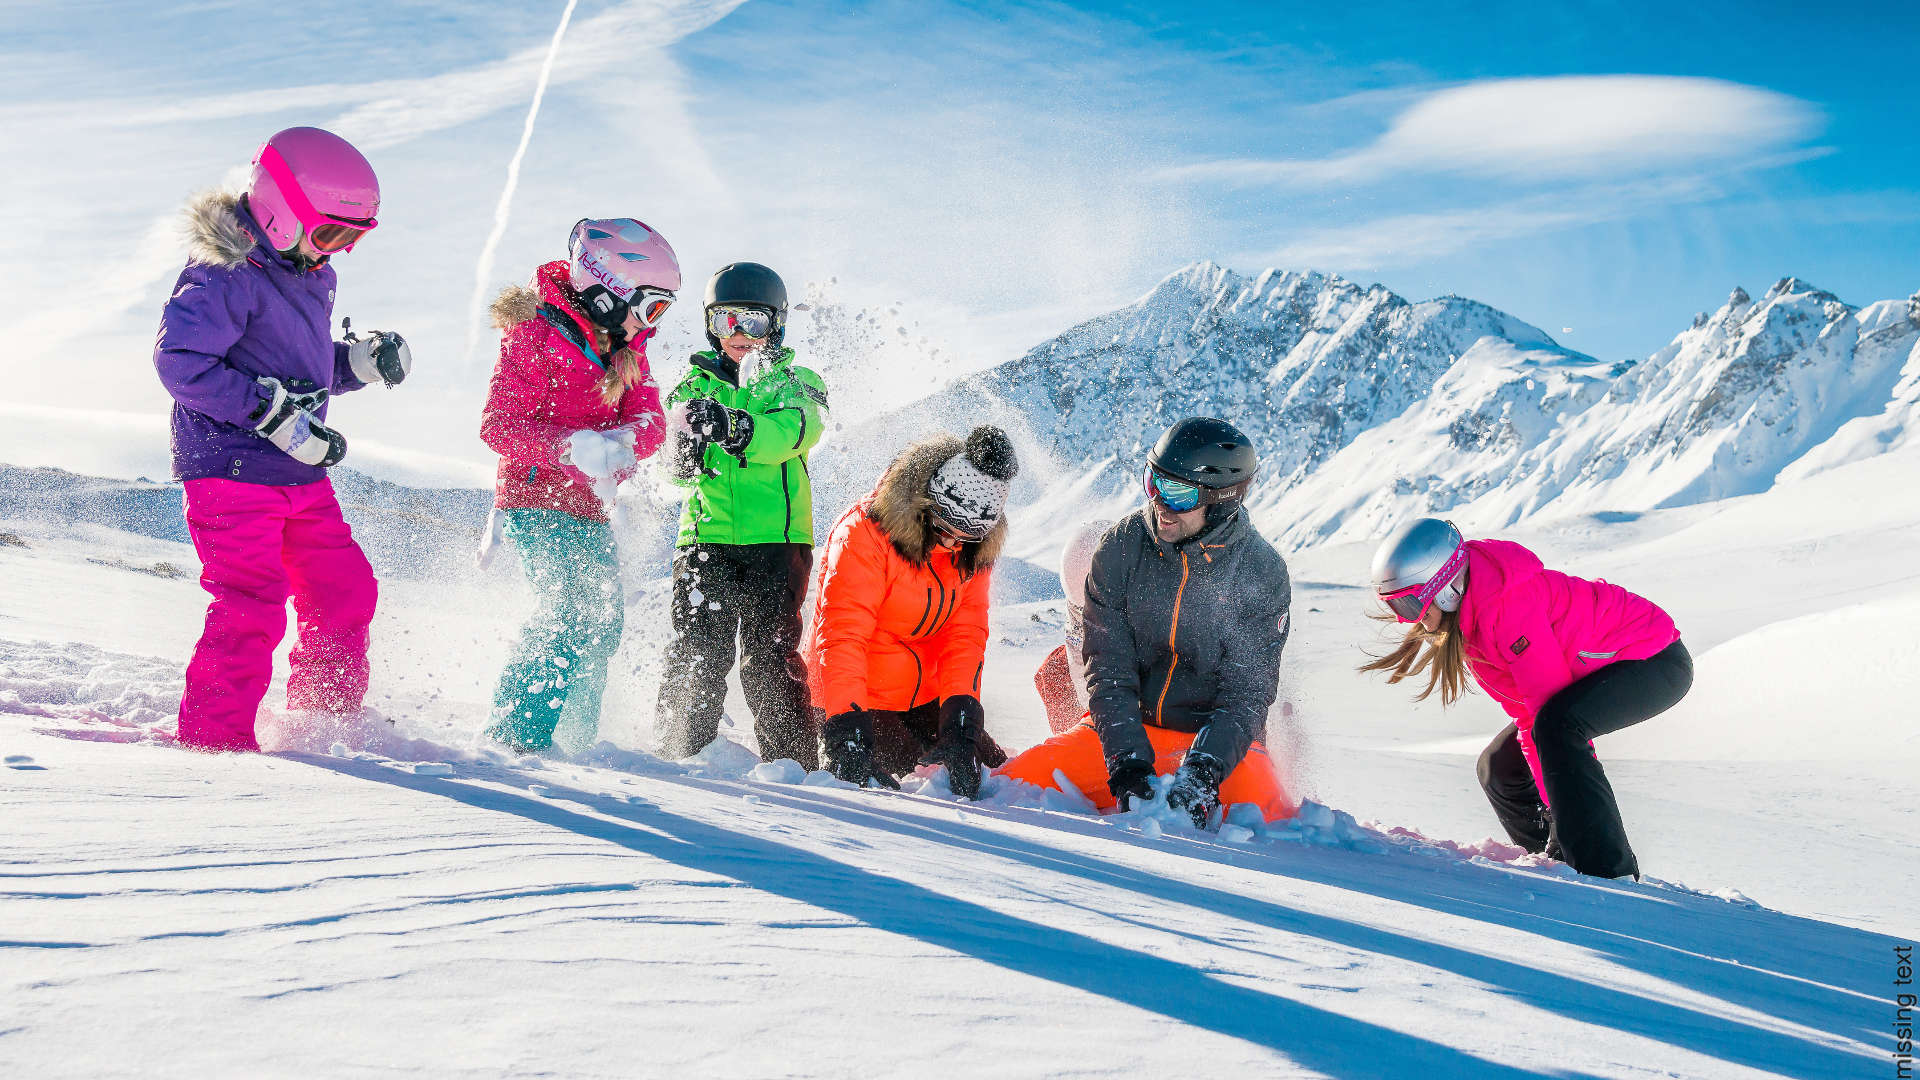 Non skier snow play at val d'isere